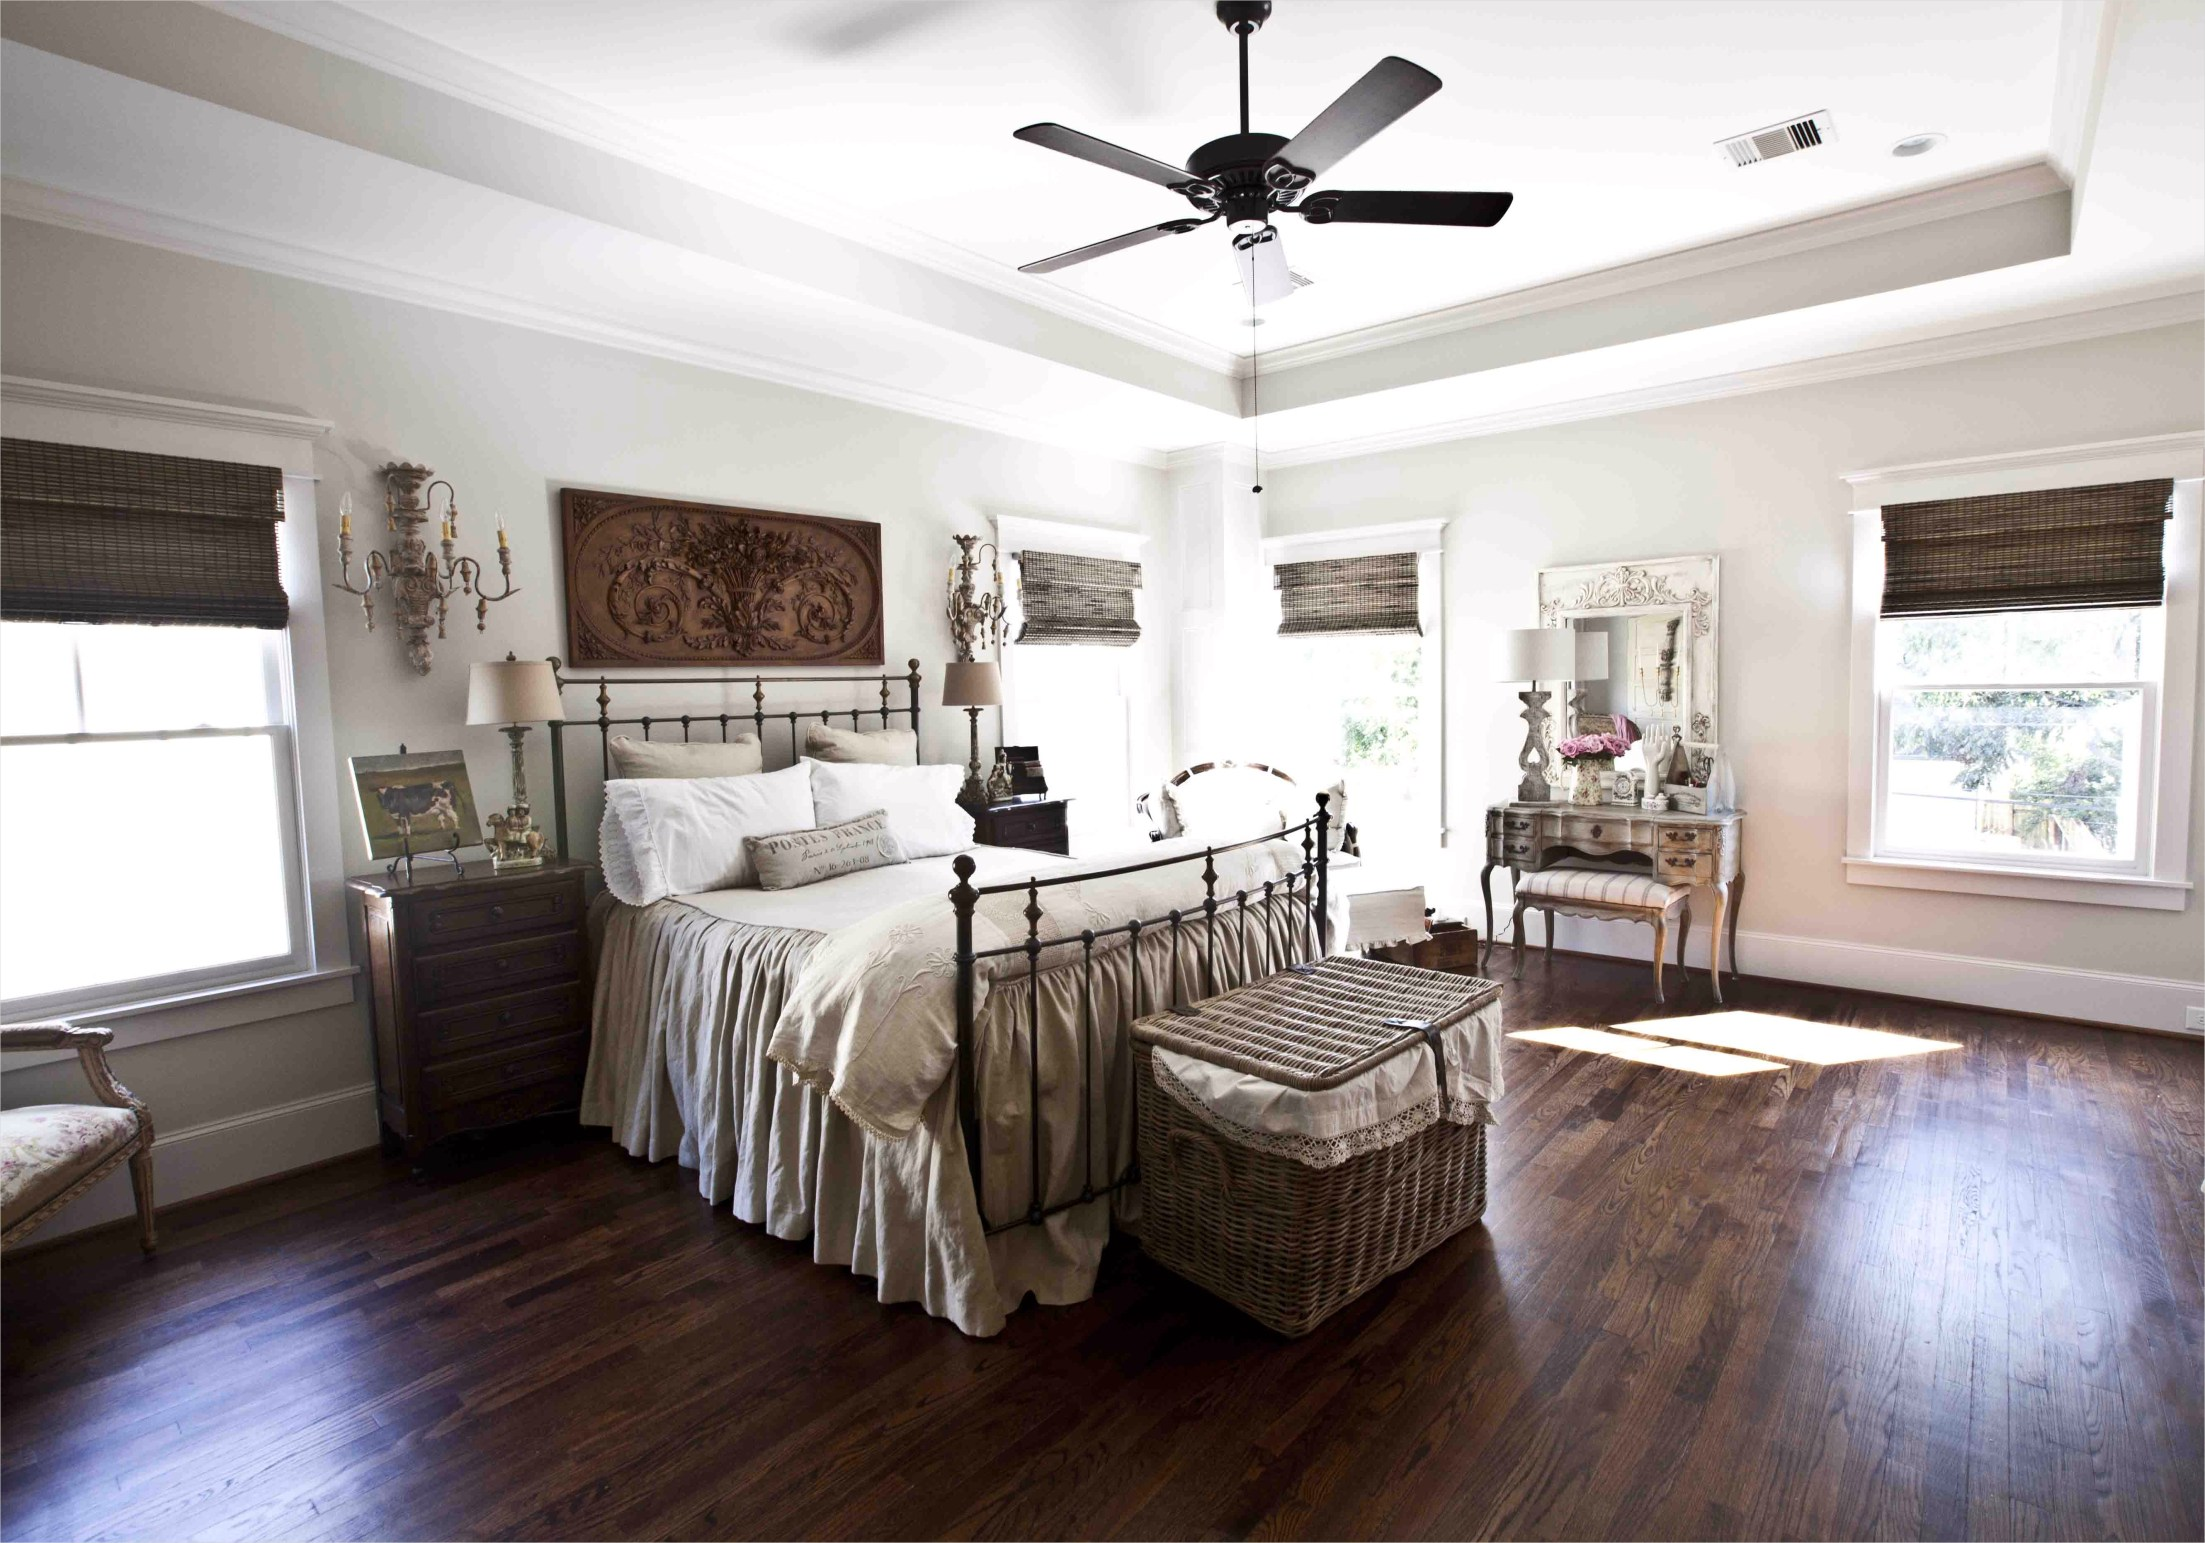 43 Stunning Country Farmhouse Bedroom Ideas 47 French Country Home tour Parade Of Homes at the Picket Fence 1